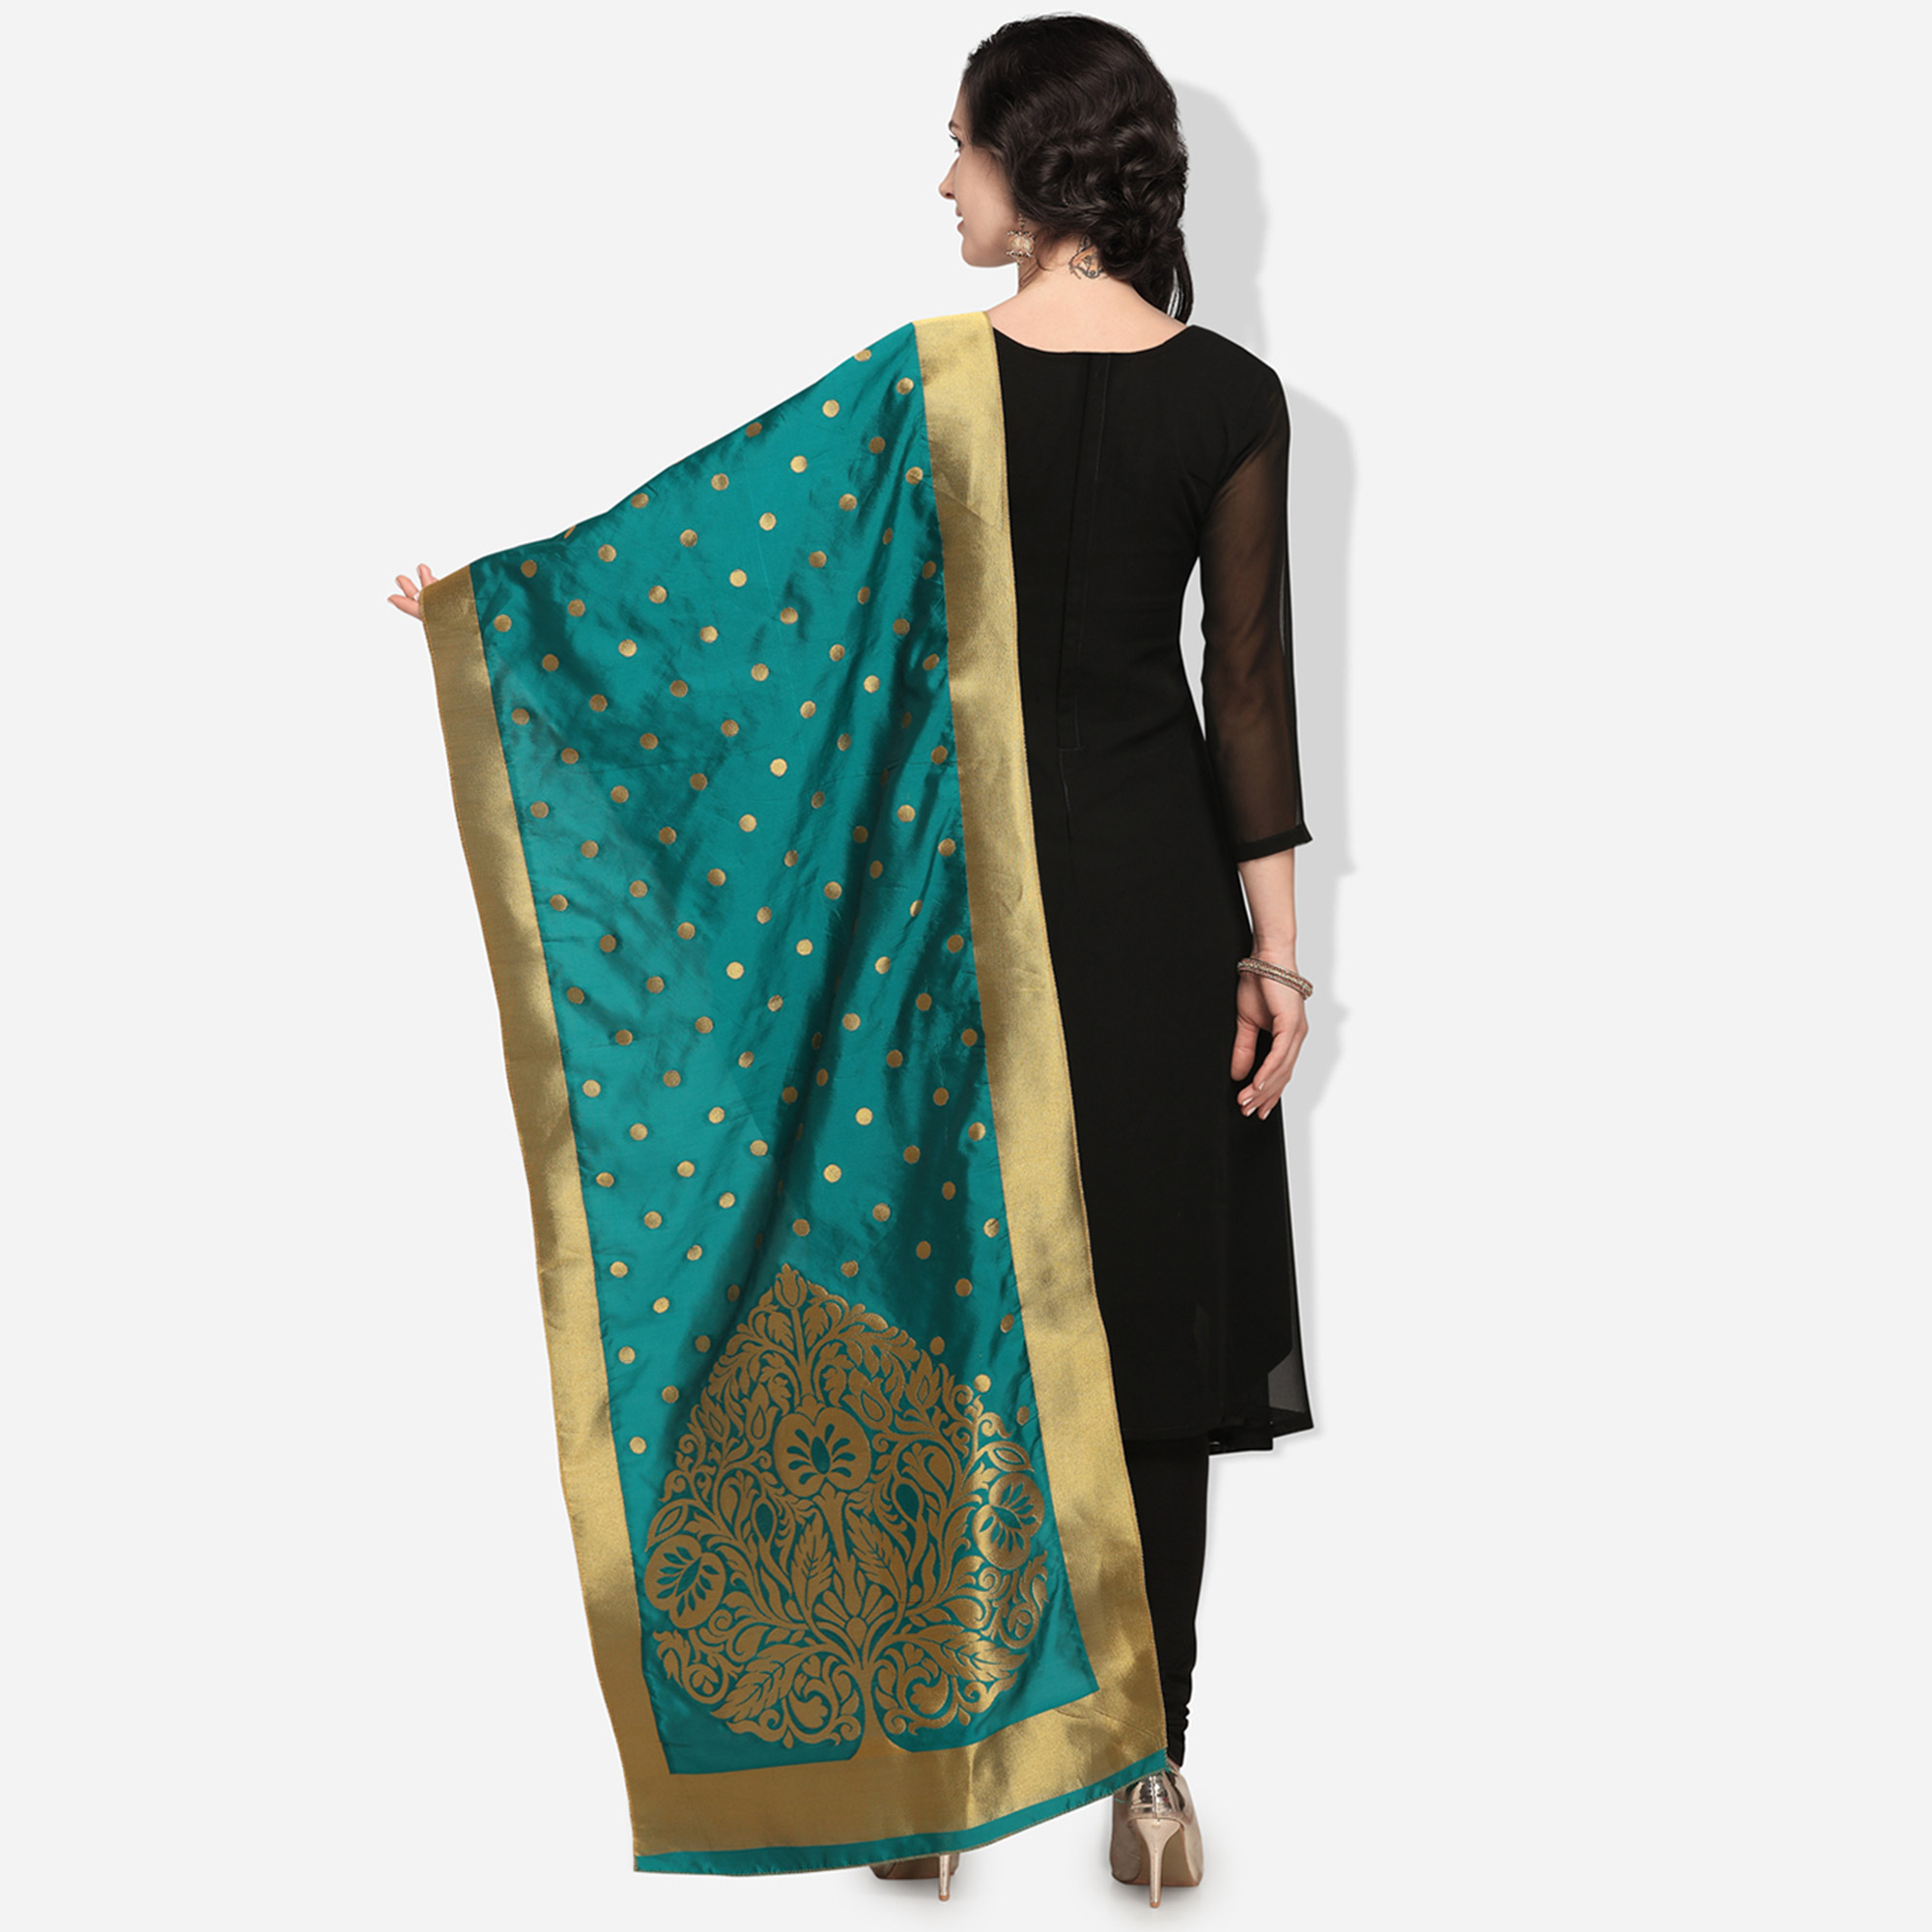 Refreshing Teal Blue Colored Festive Wear Jacquard Banarasi Silk Dupatta